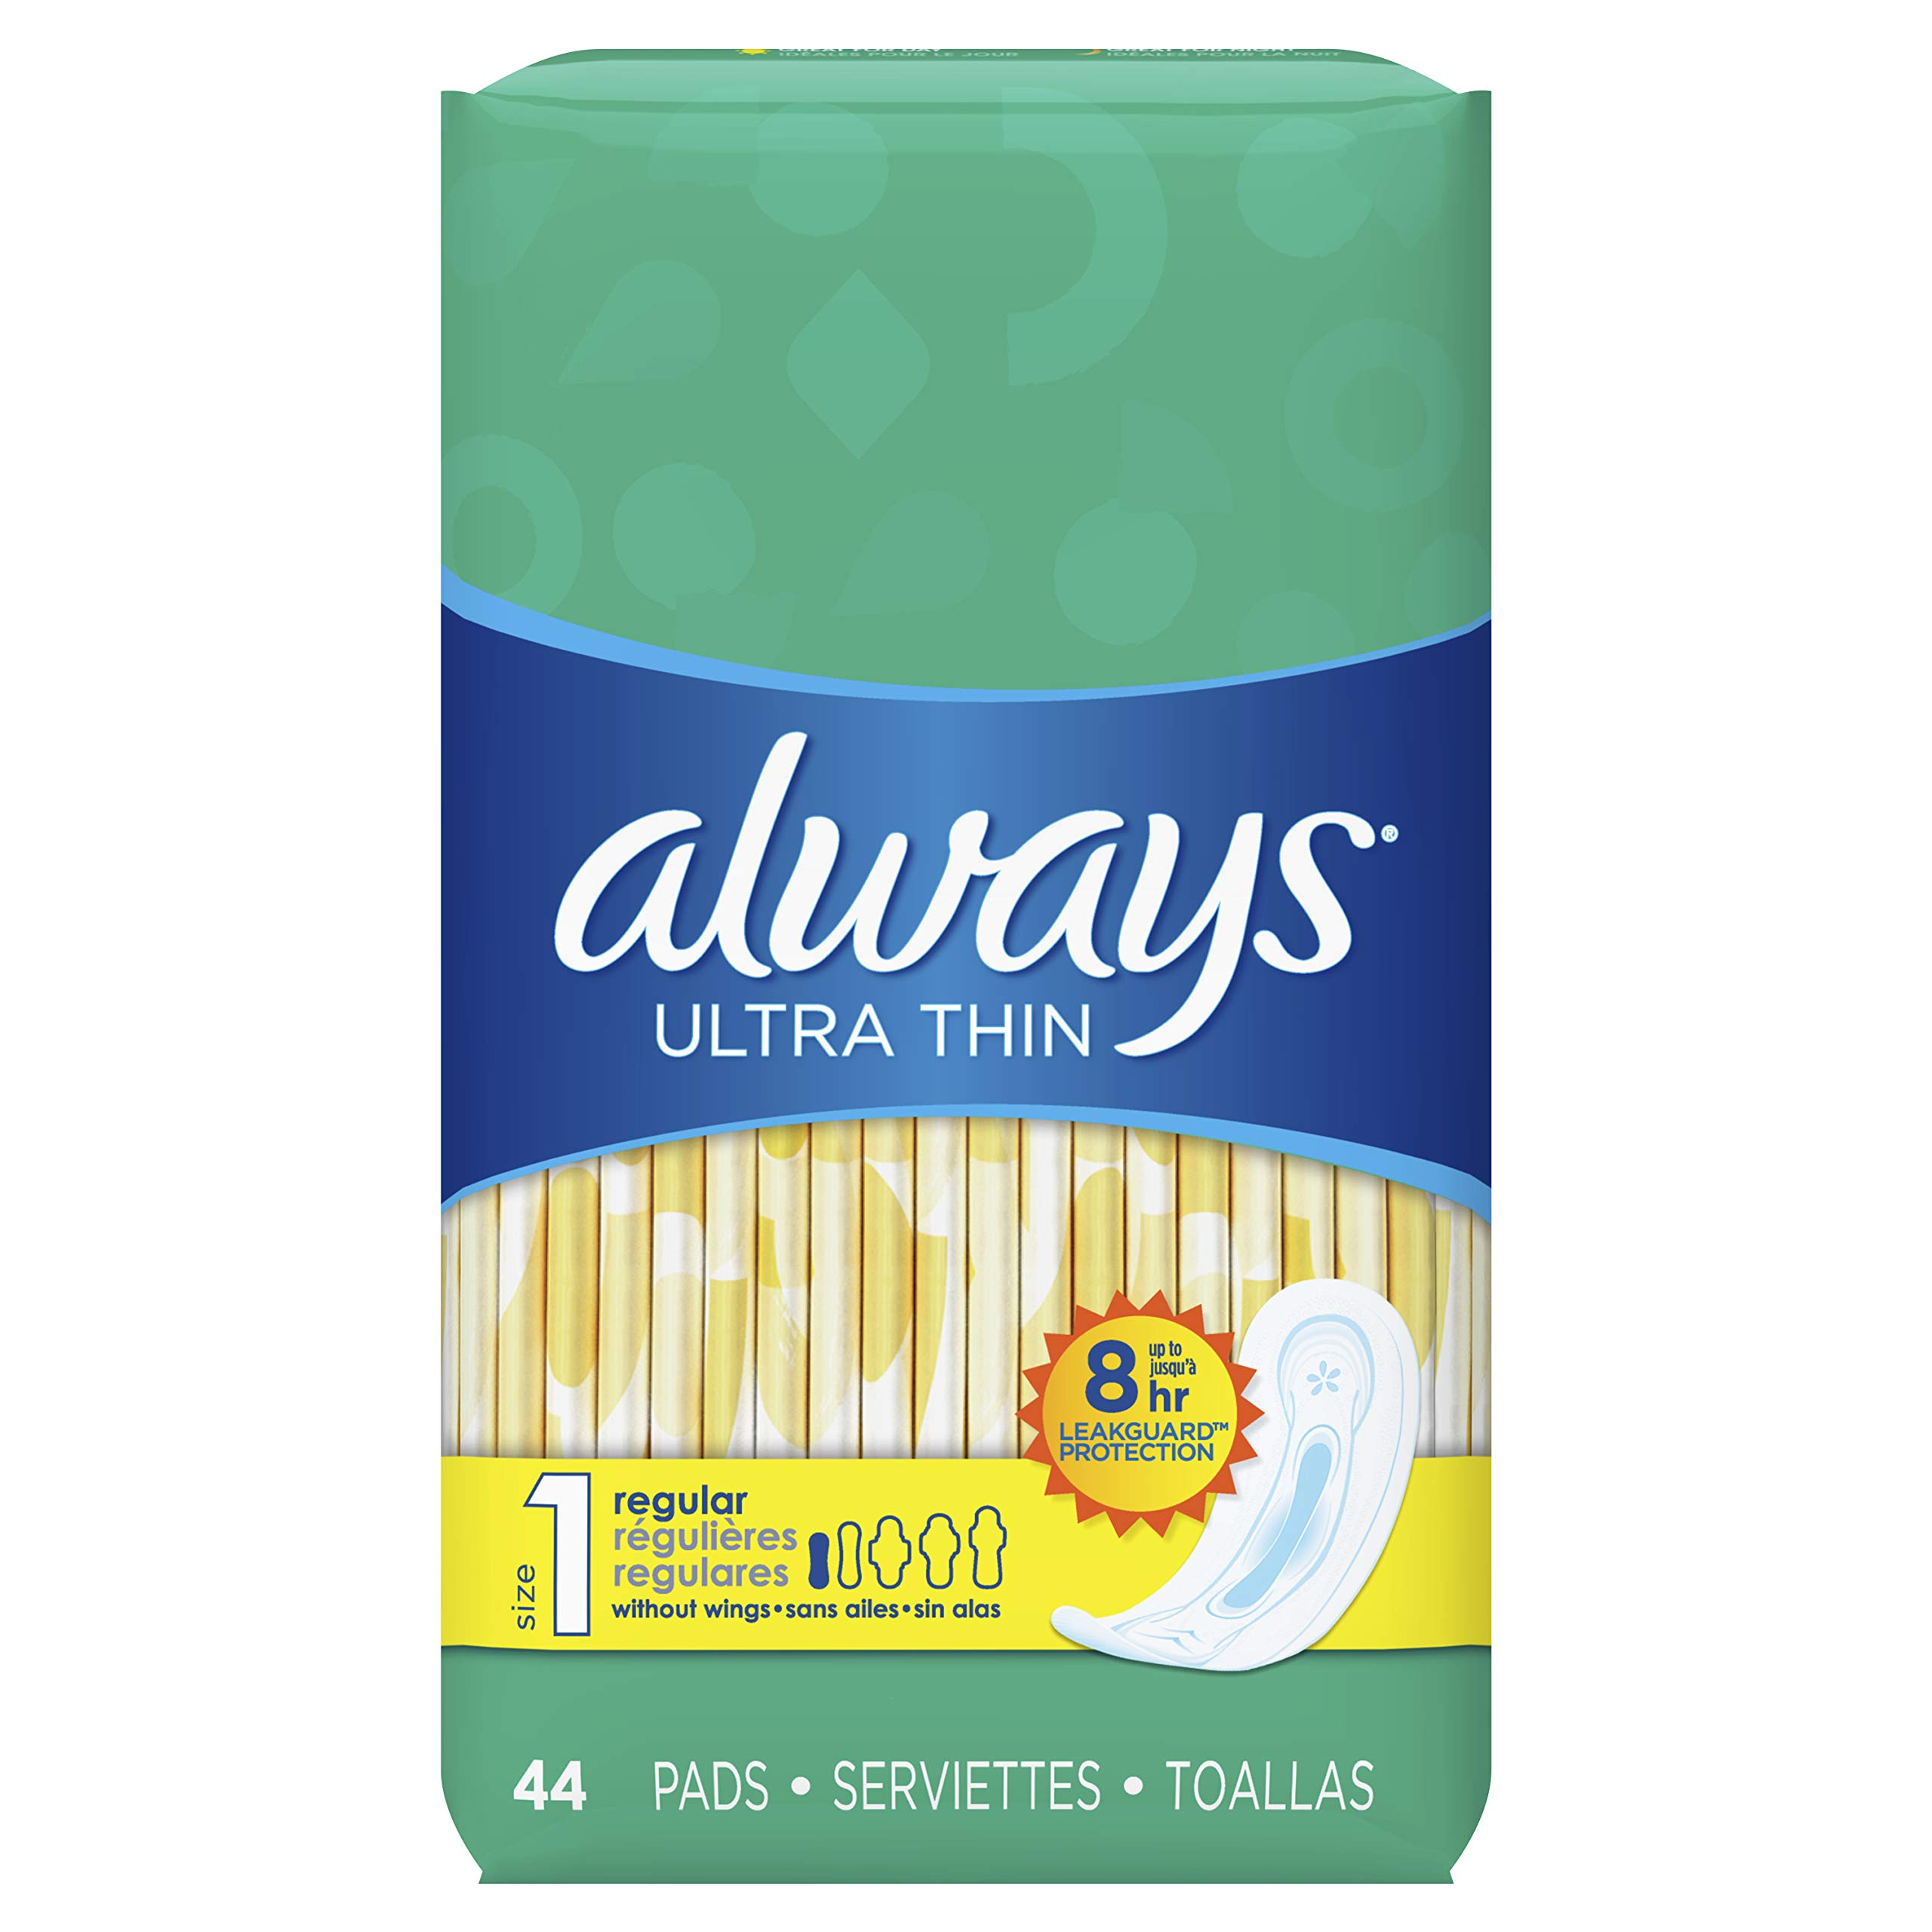 Always Ultra Thin, Size 1, Regular Pads, 132 Count, Unscented (44 Count, Pack of 3 – 132 Count Total)